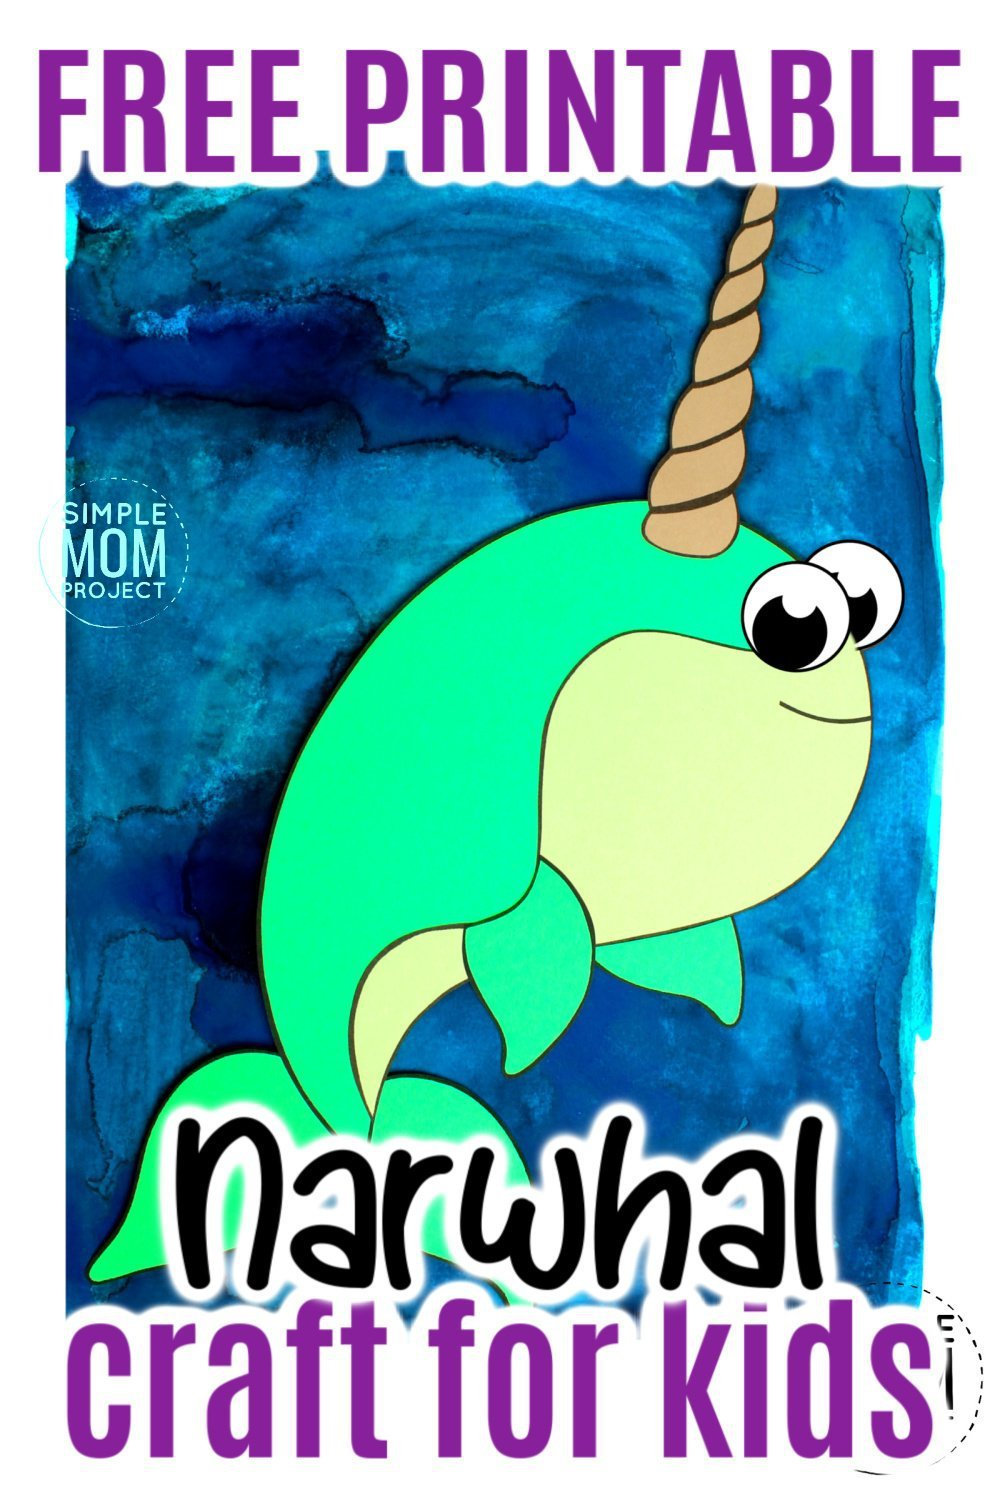 Free Printable Arctic Animal Narwhal Craft for Kids Preschoolers and Toddlers